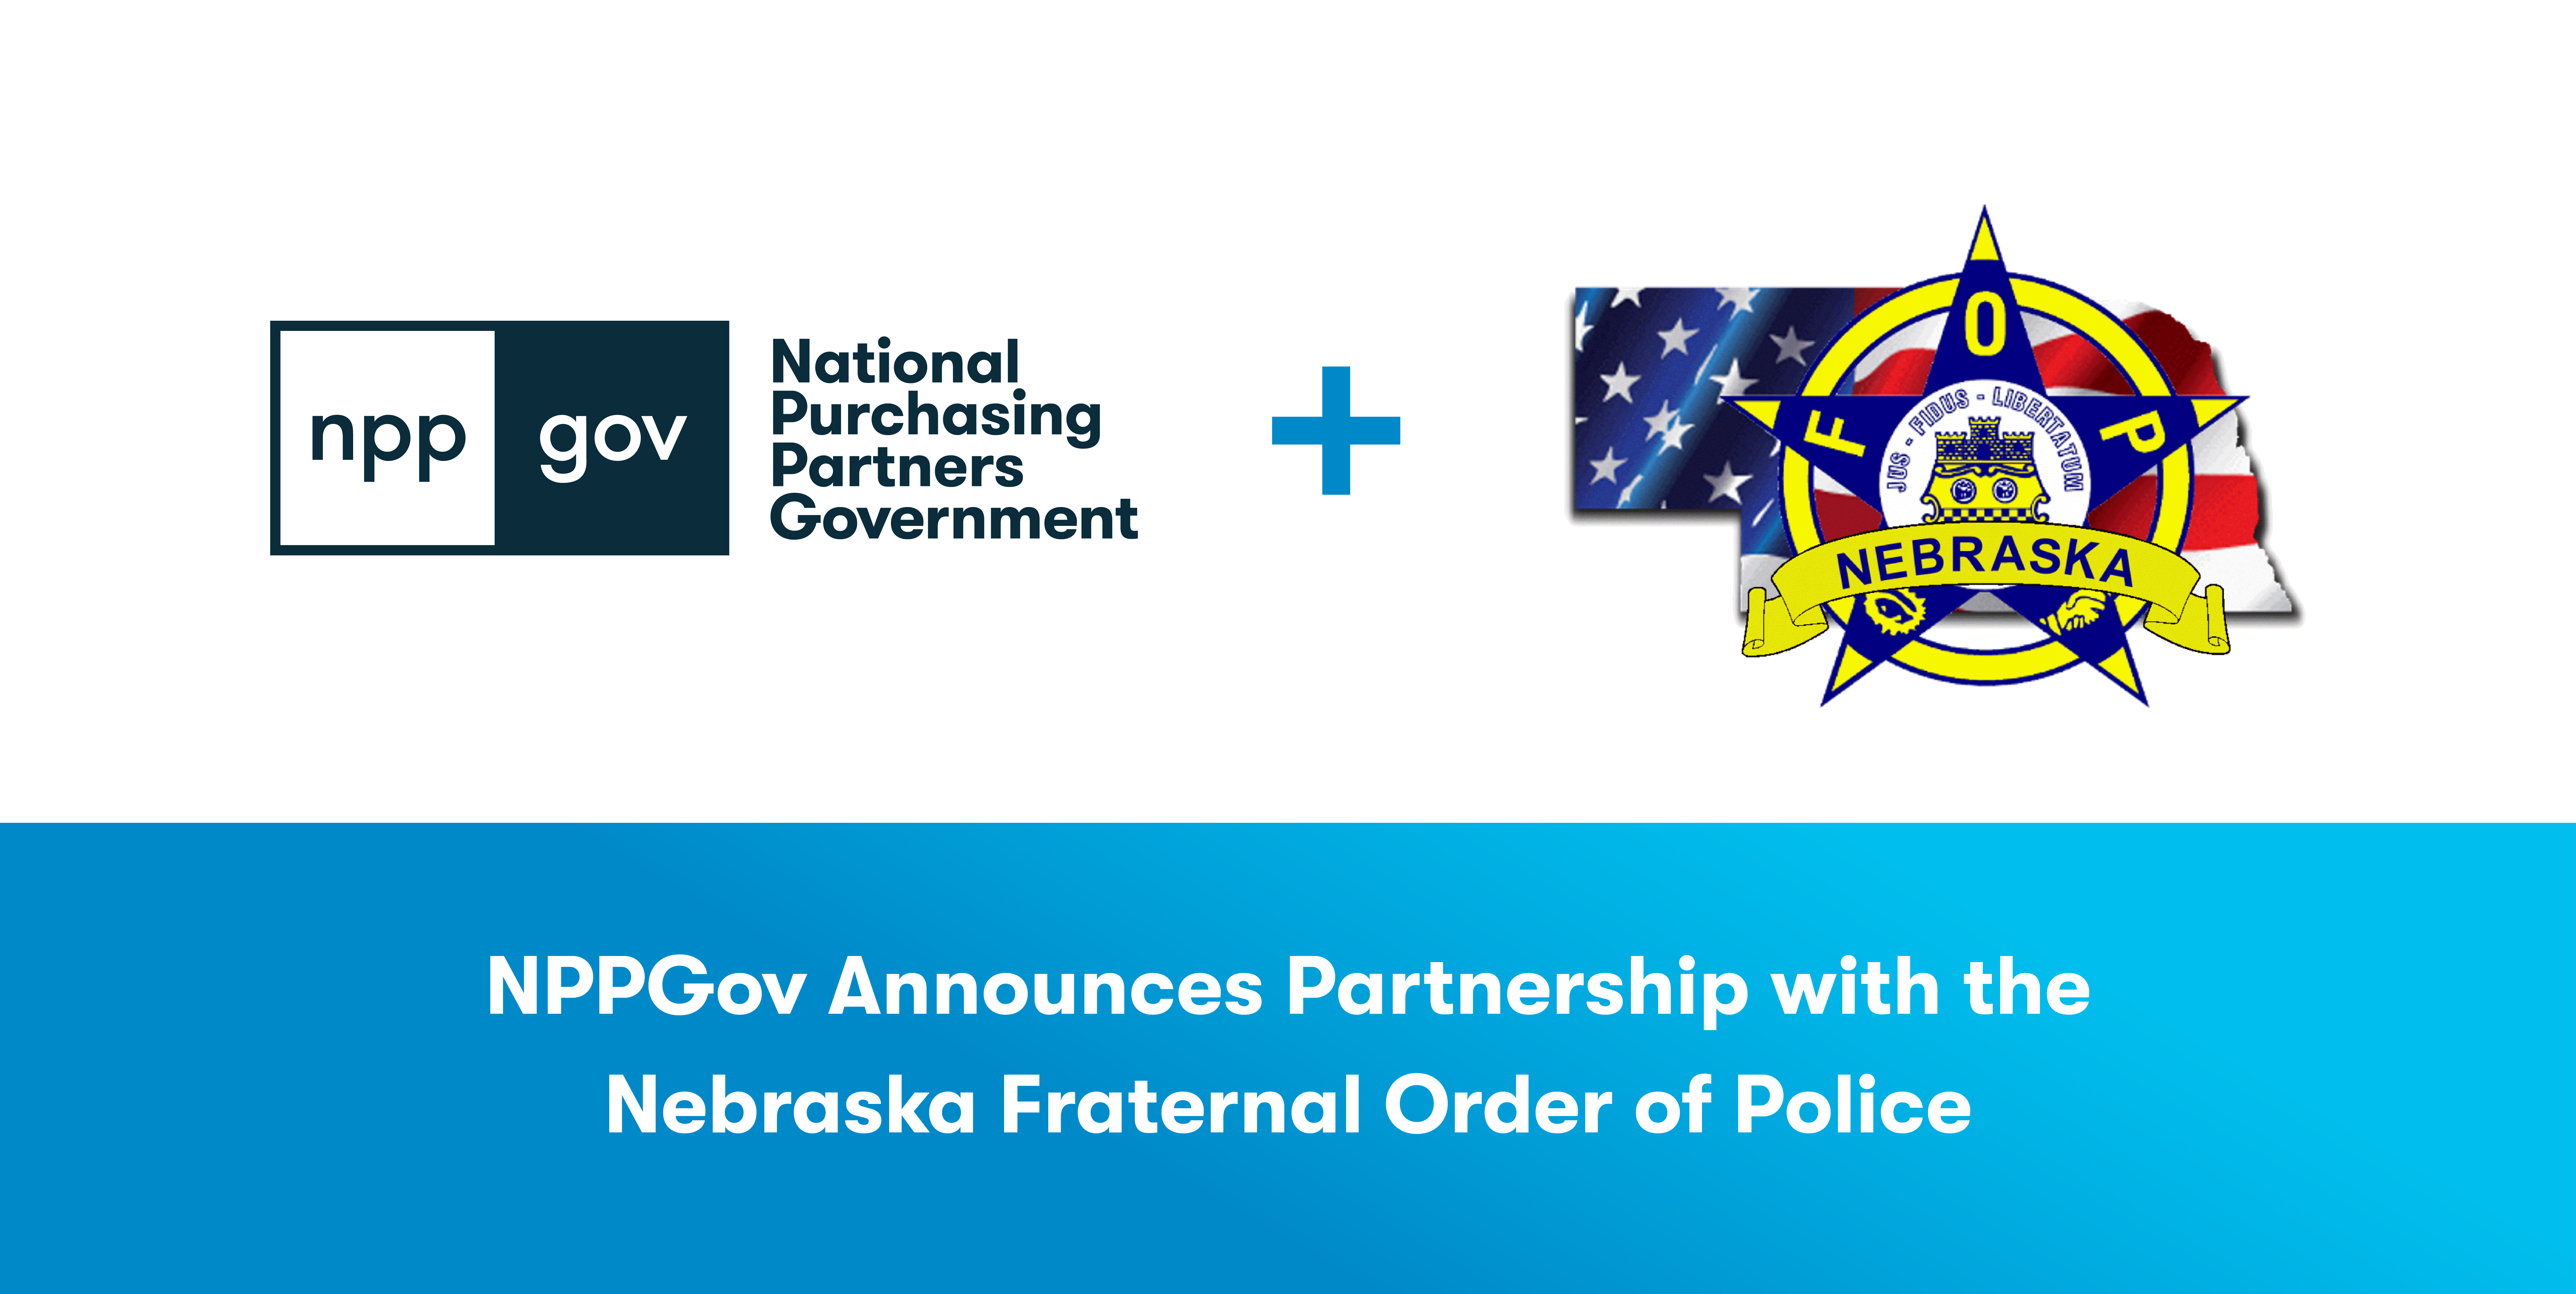 NPPGov Public Safety GPO Partners with the Nebraska Fraternal Order of Police